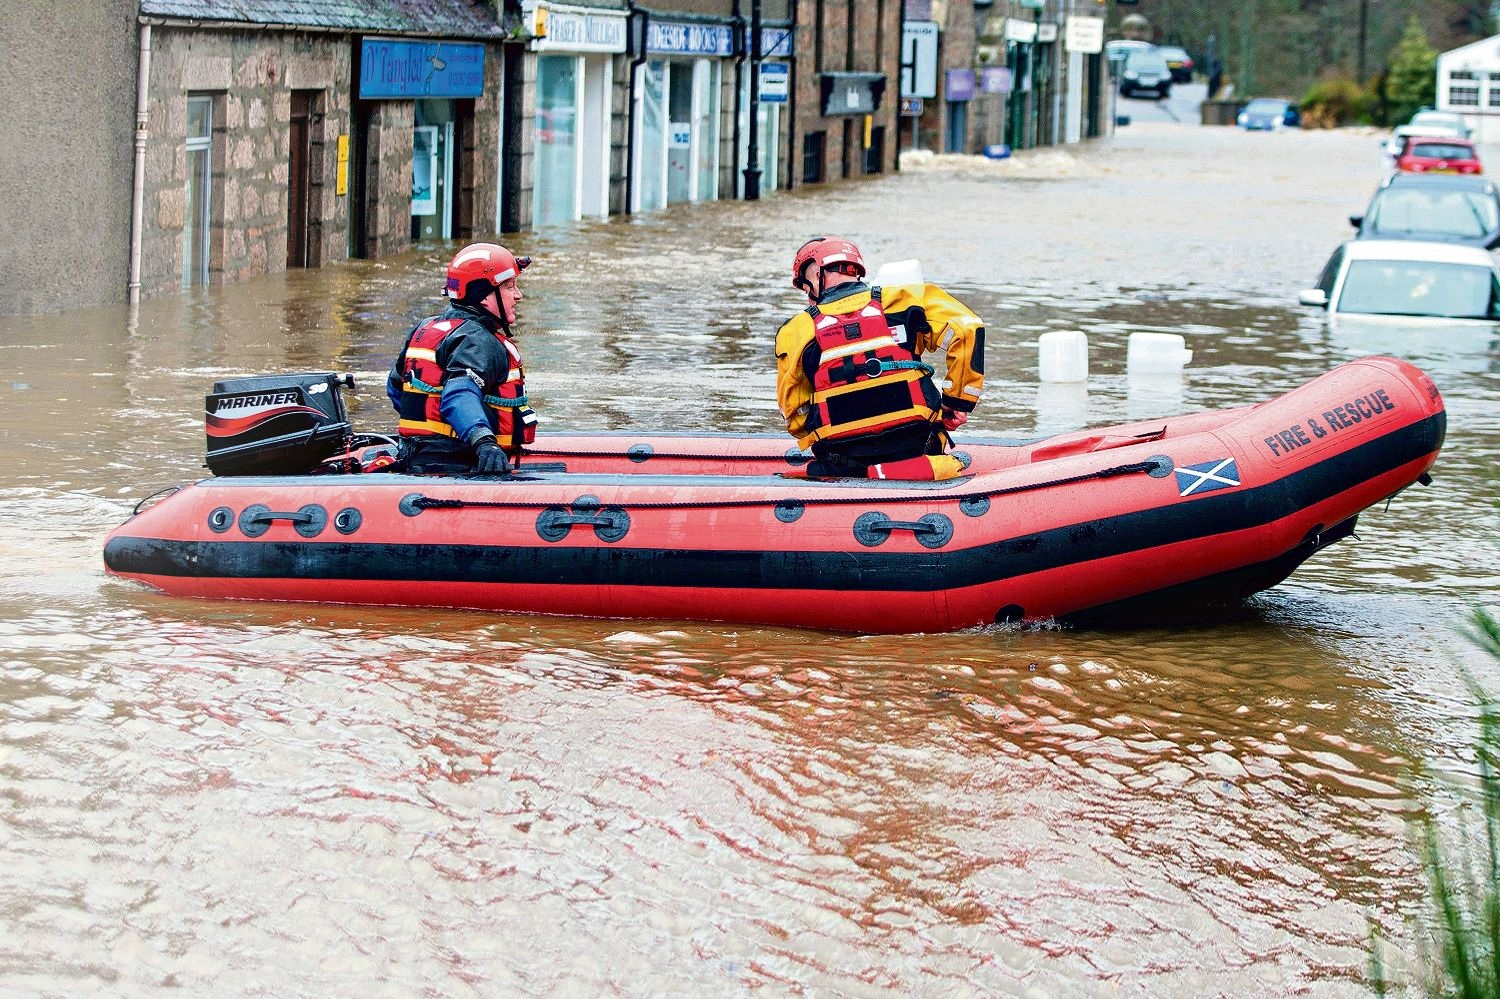 Specialist resources deployed to help affected communities in the North